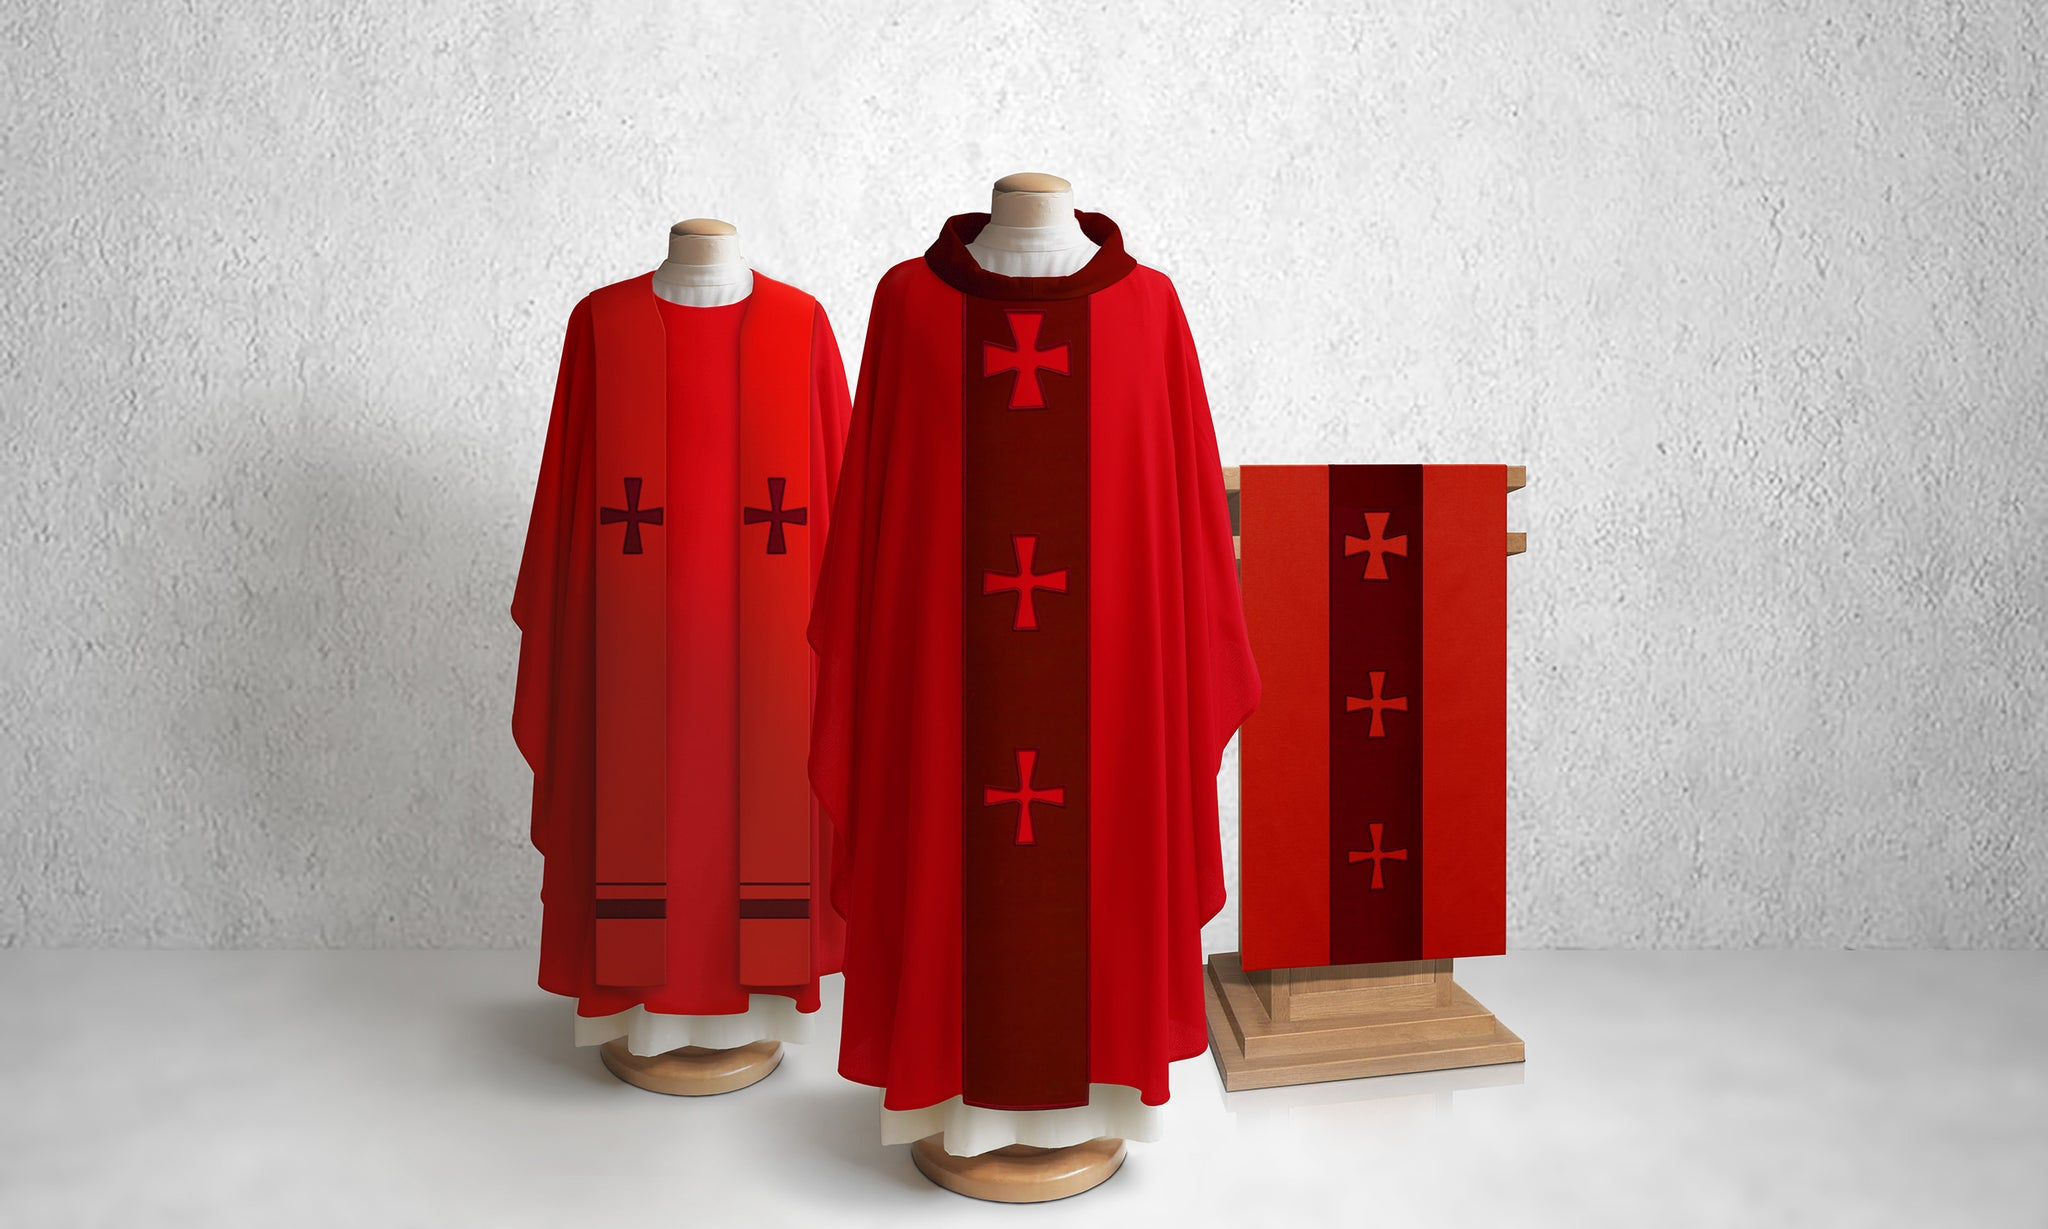 376 Crucifixion Lectern Hanging in Red